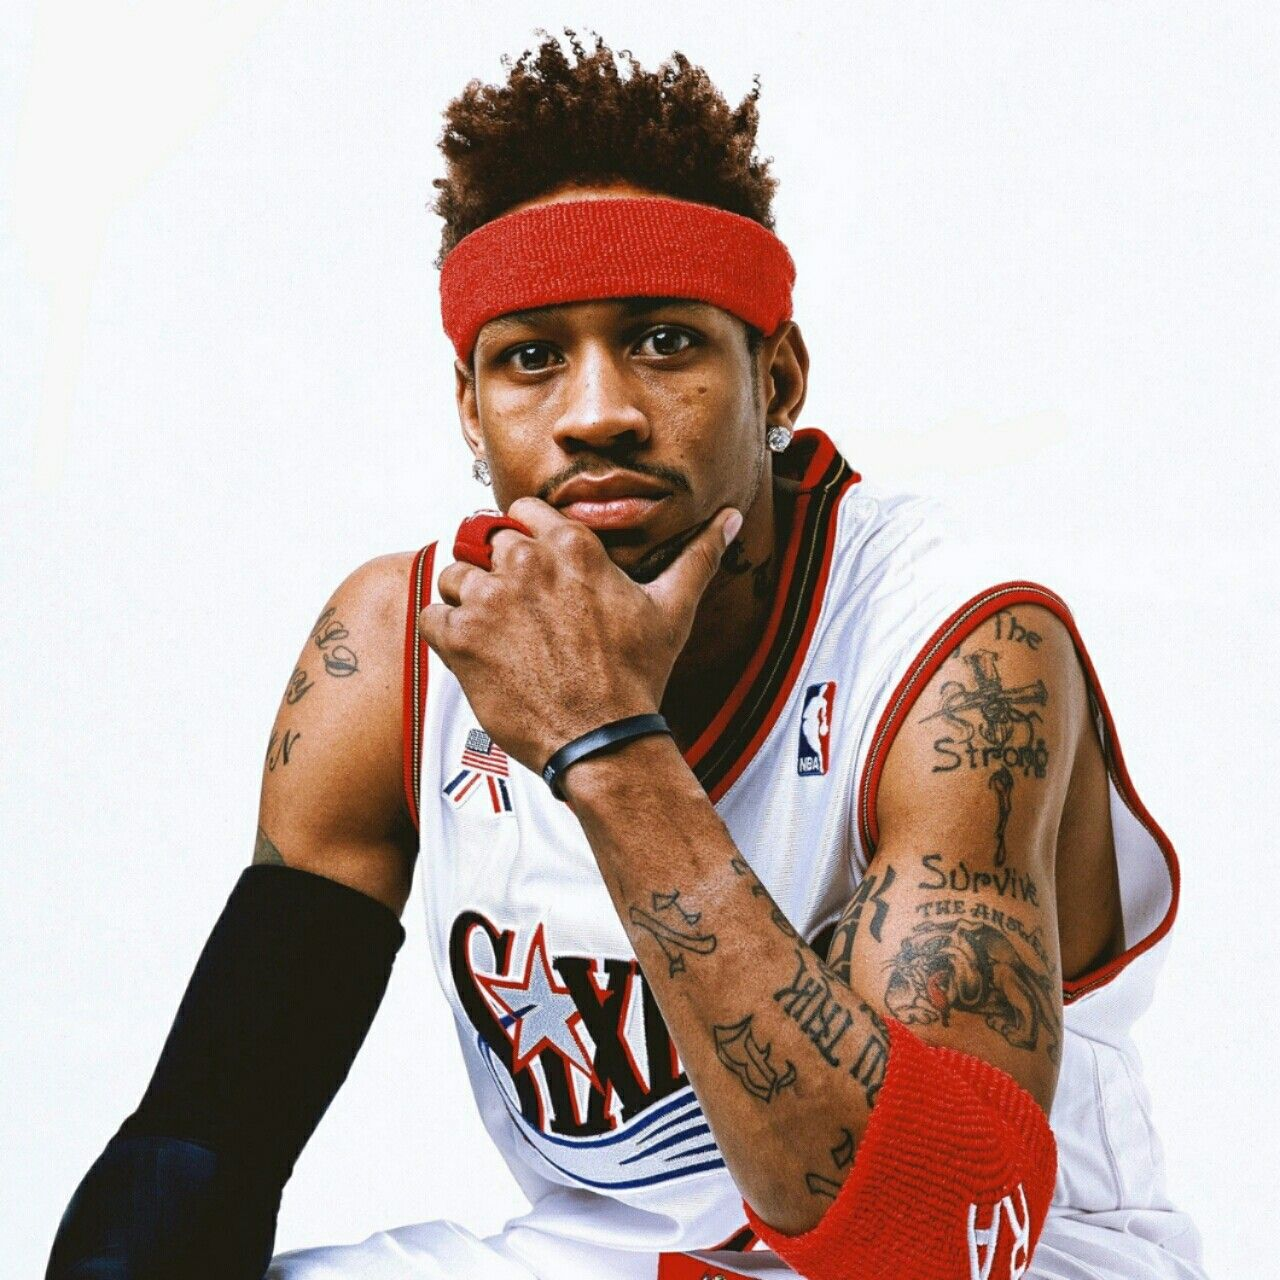 Pin on iverson